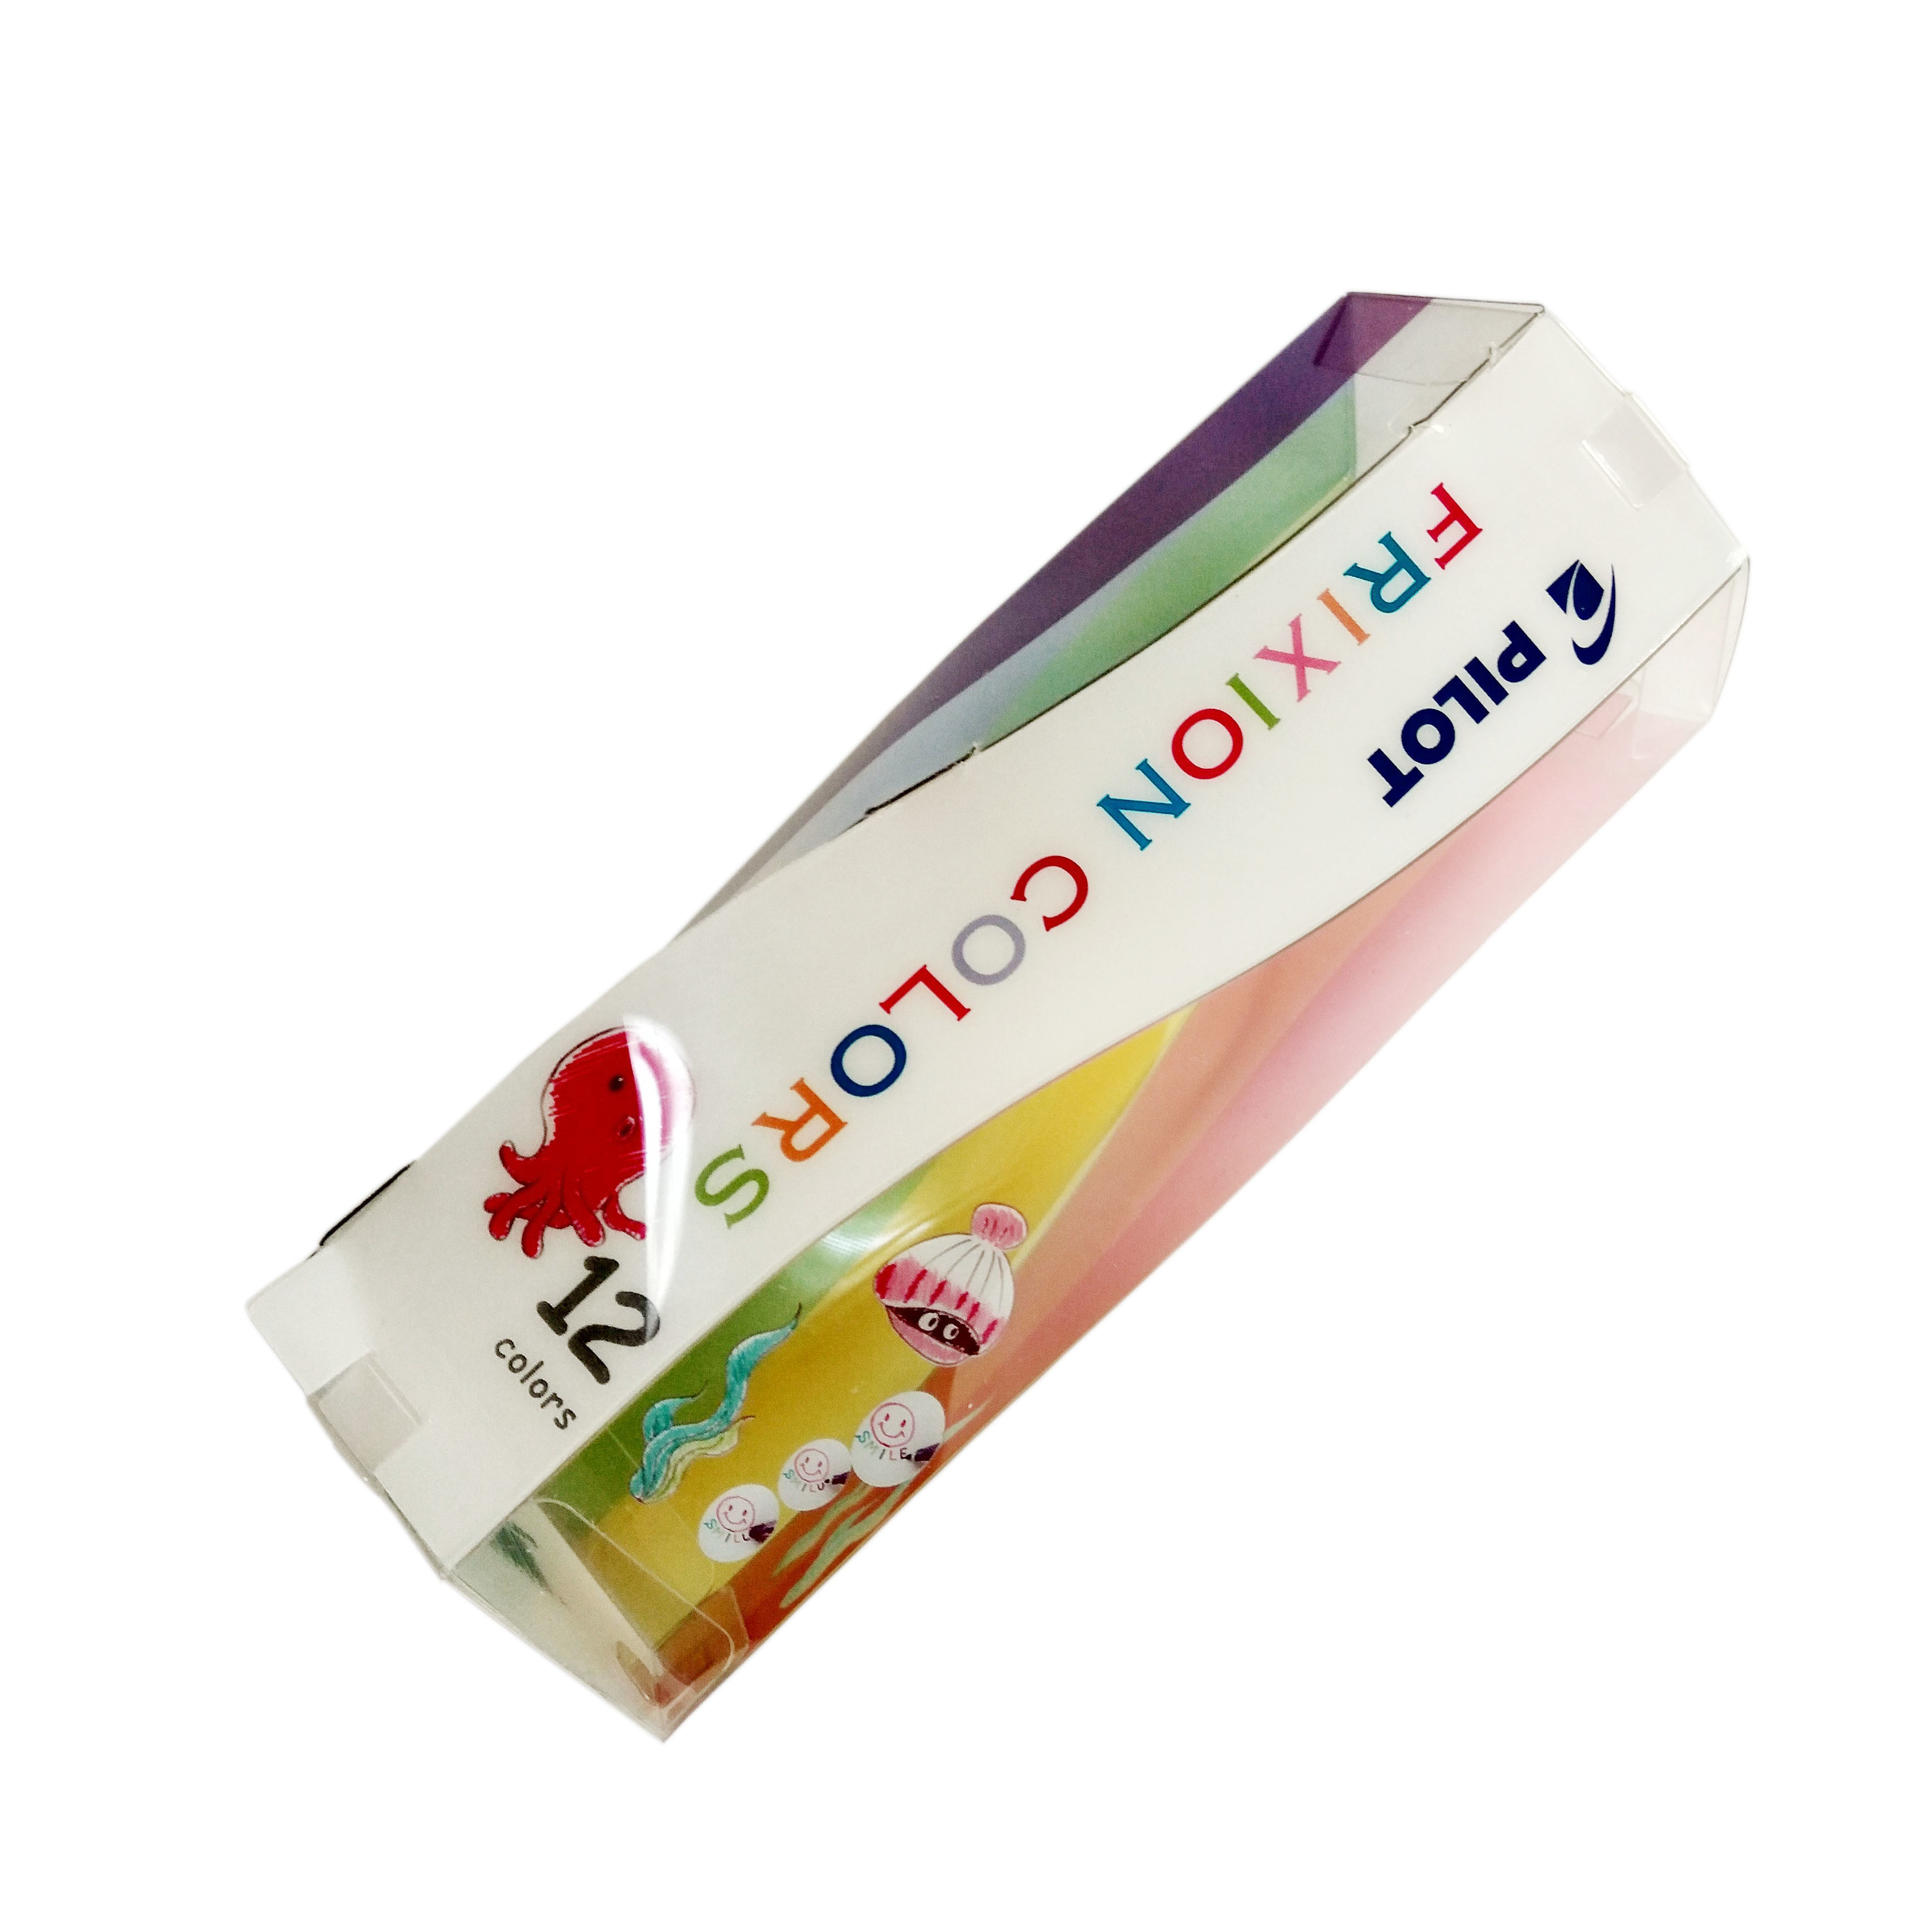 Spiral Shape Printing Plastic Tube Box for Crayon/Pen Set